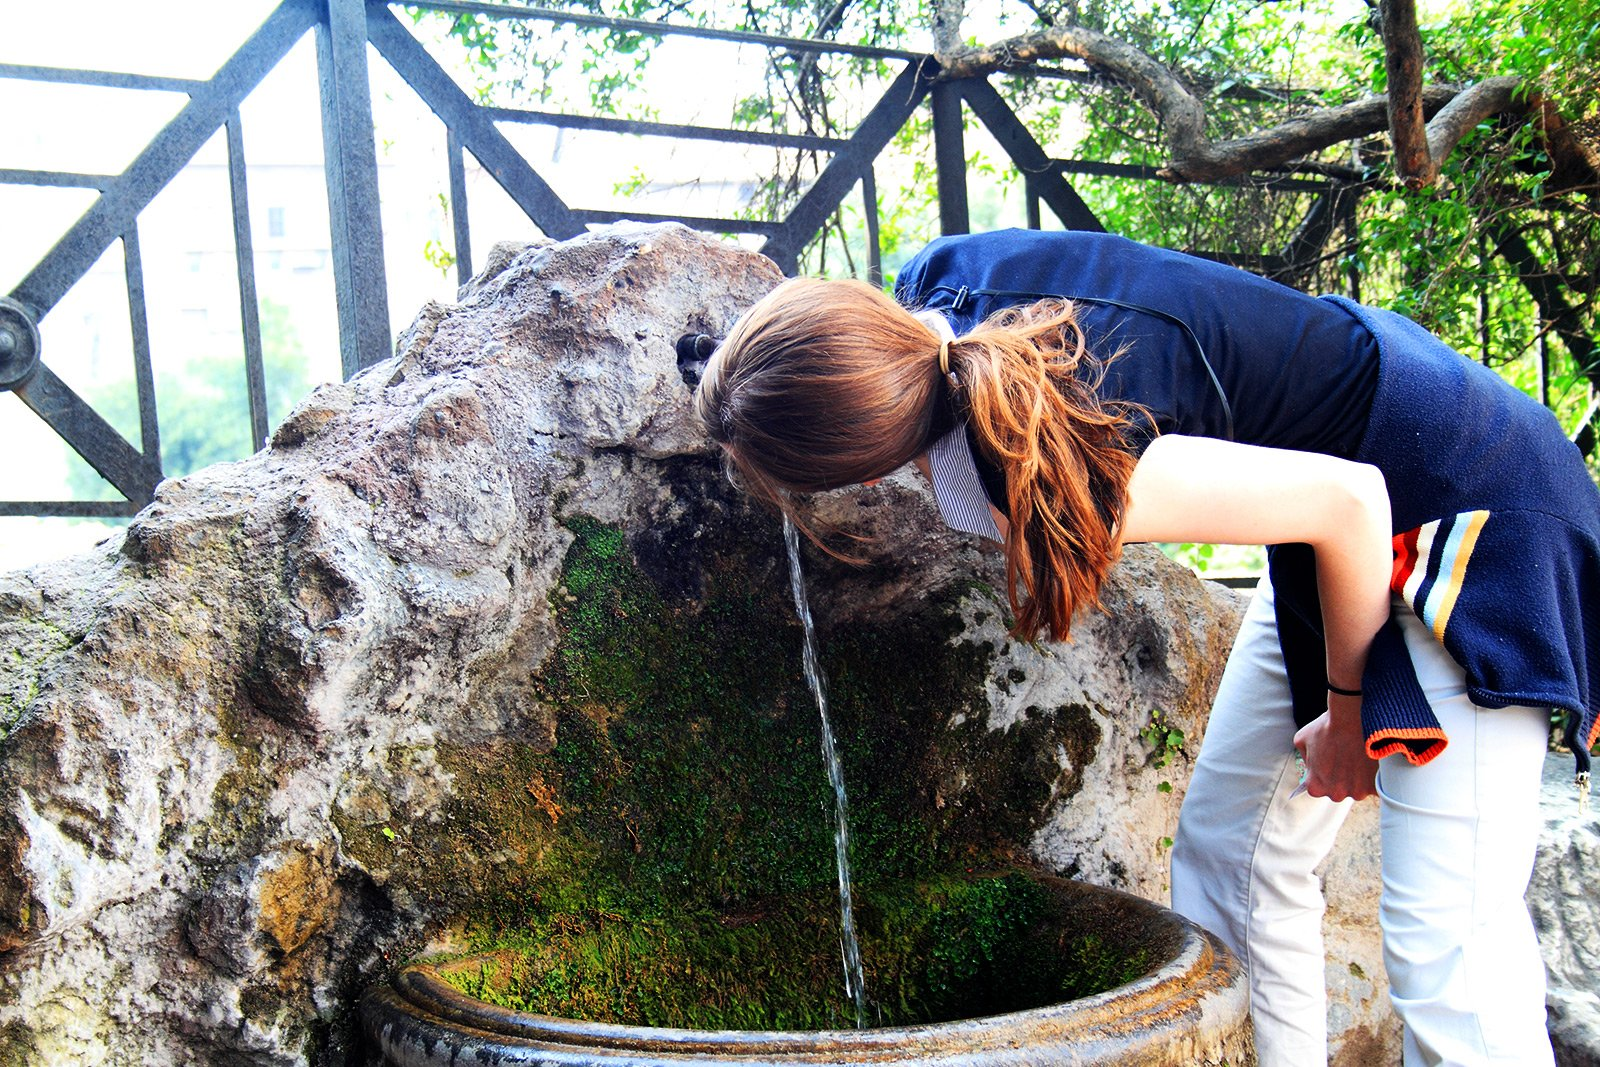 How to drink water from fontanelle in Rome